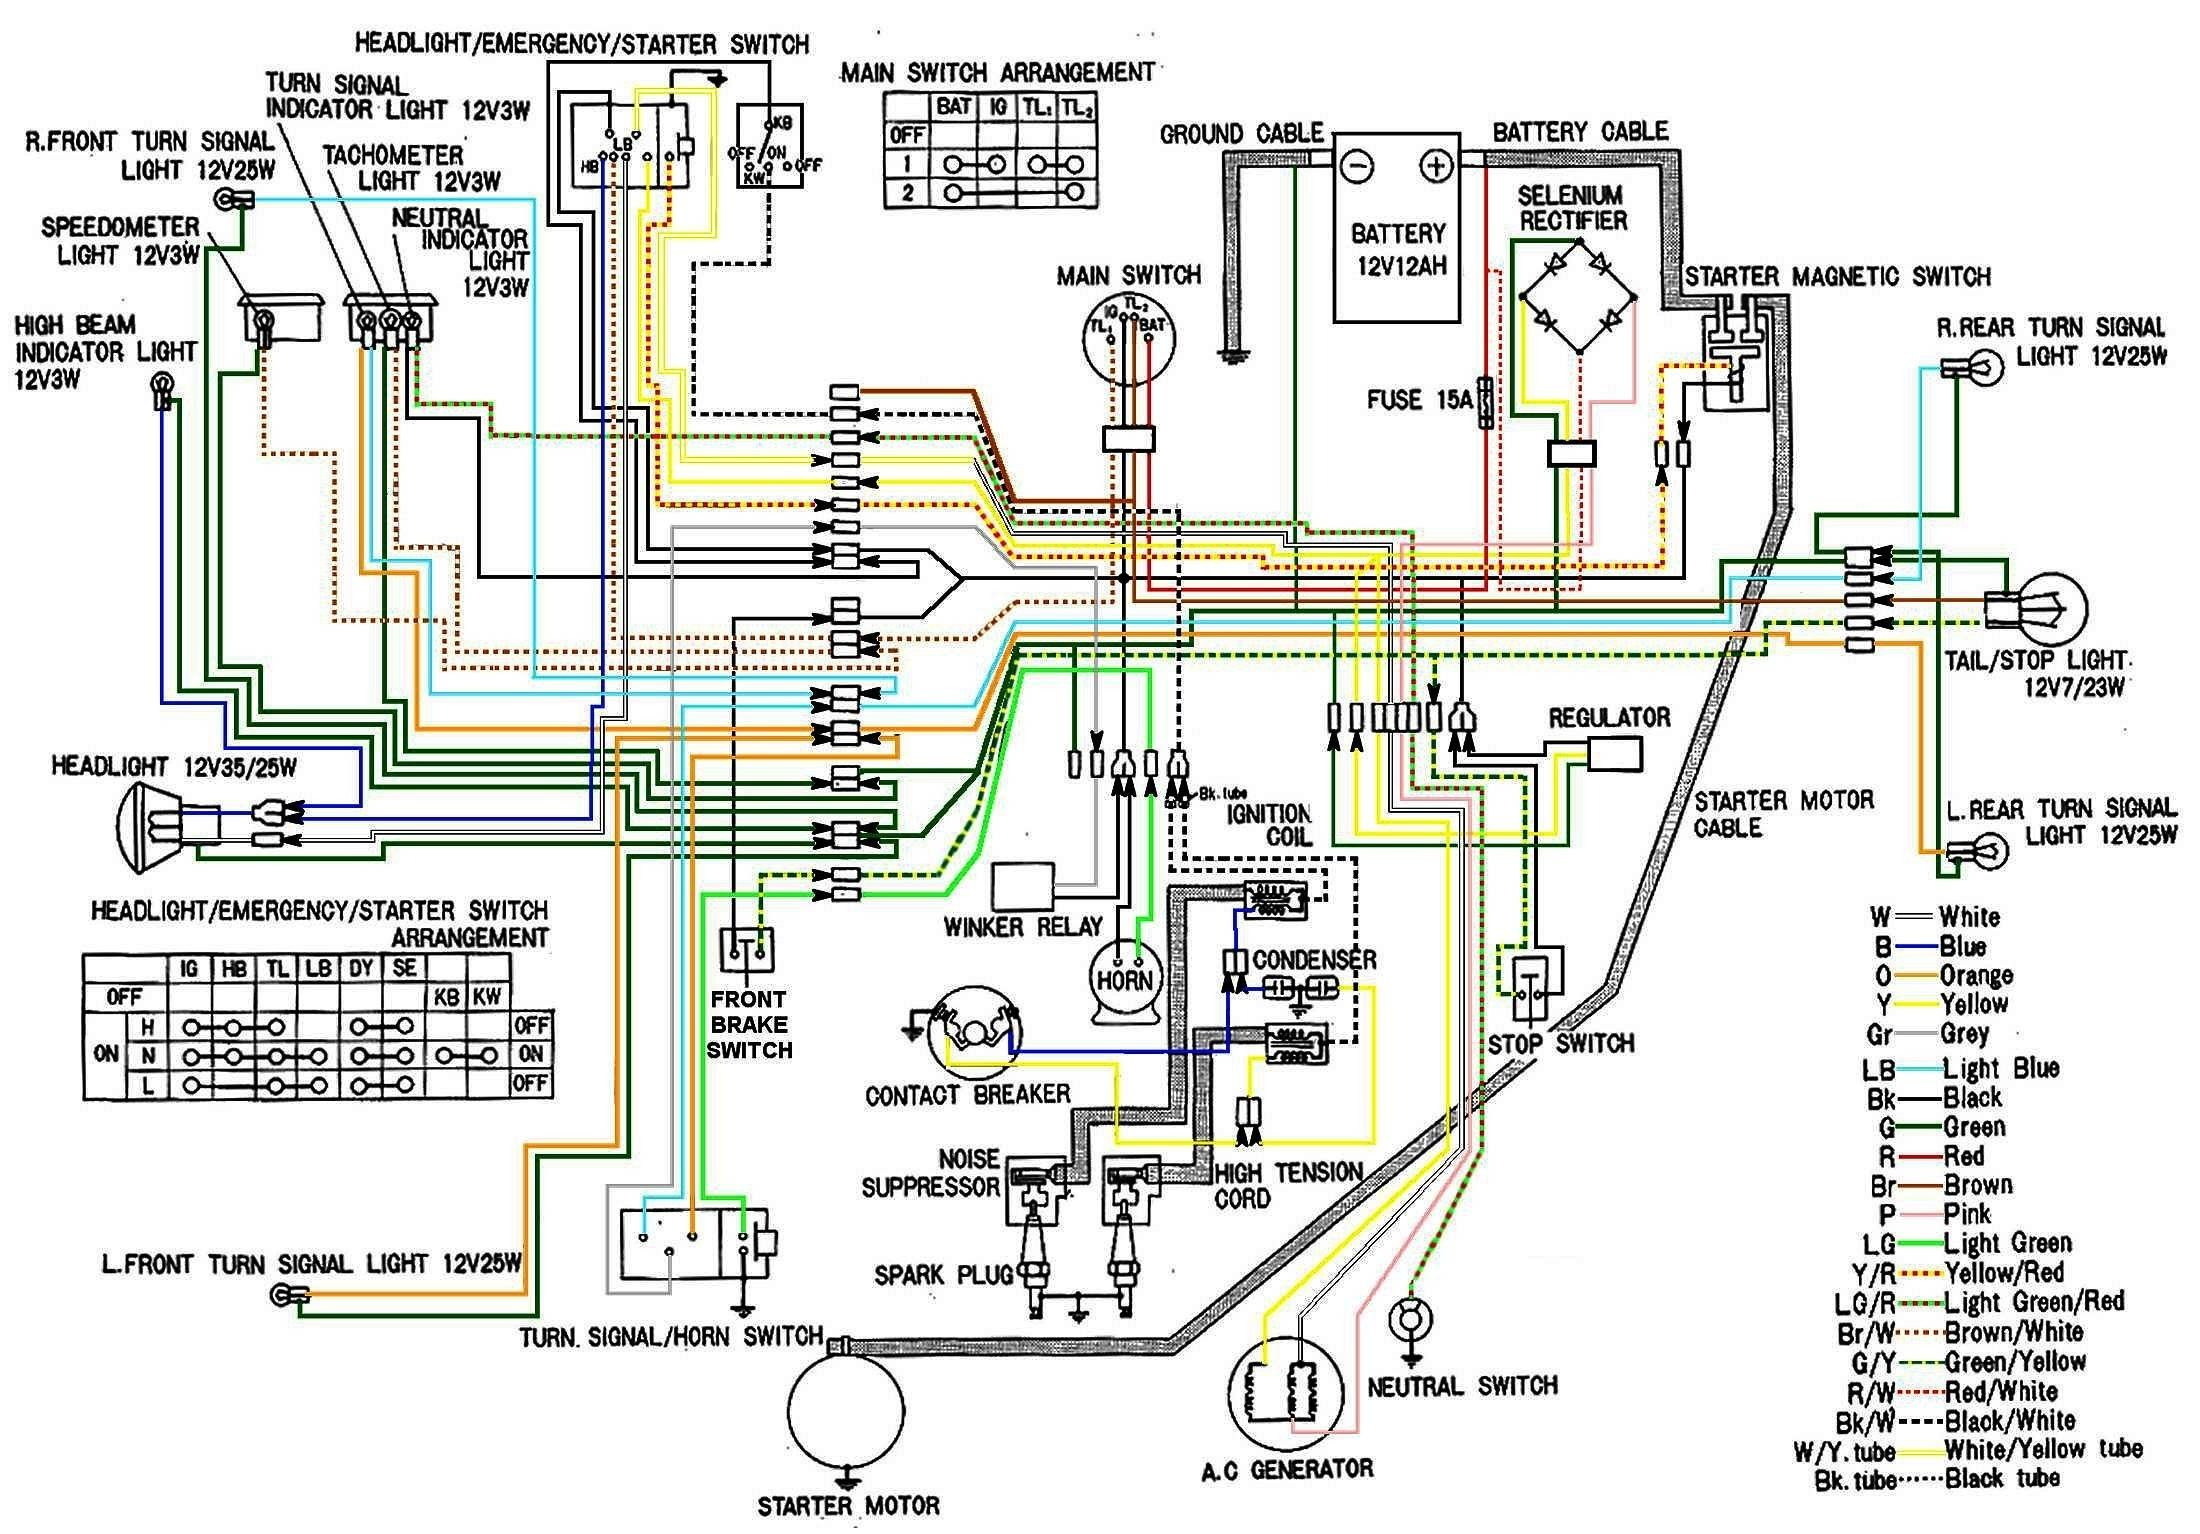 hight resolution of unique wiring diagram for home telephone diagram diagramsample diagramtemplate wiringdiagram diagramchart worksheet worksheettemplate